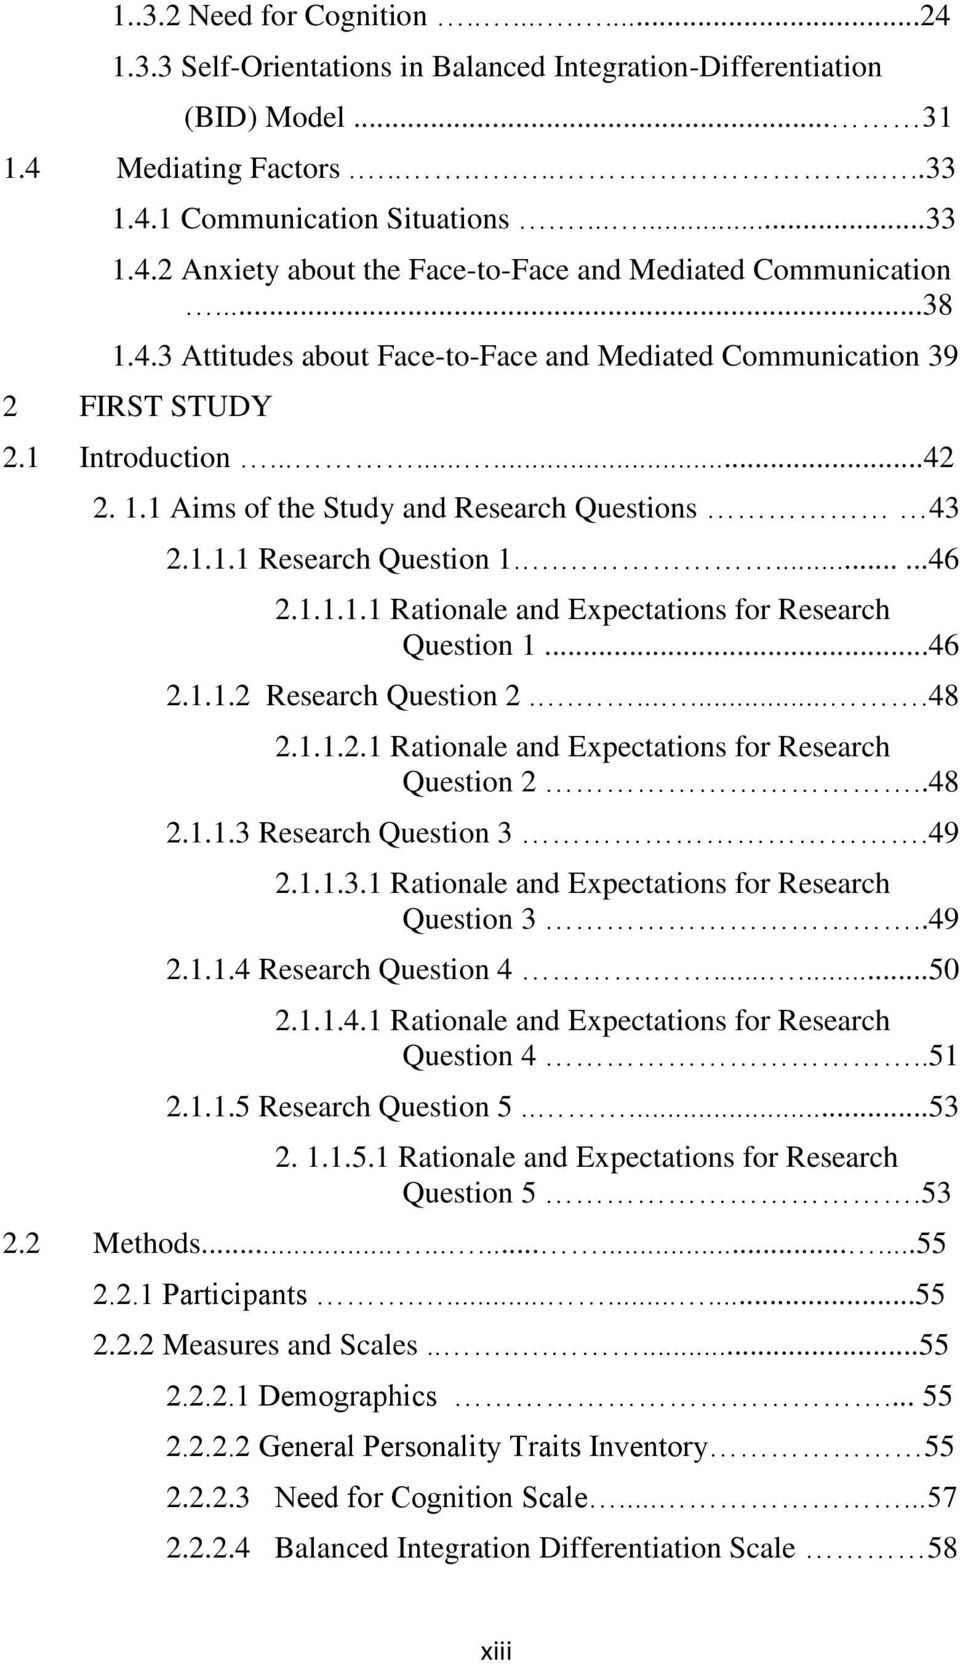 1.1.1.1 Rationale and Expectations for Research Question 1...46 2.1.1.2 Research Question 2.........48 2.1.1.2.1 Rationale and Expectations for Research Question 2..48 2.1.1.3 Research Question 3.